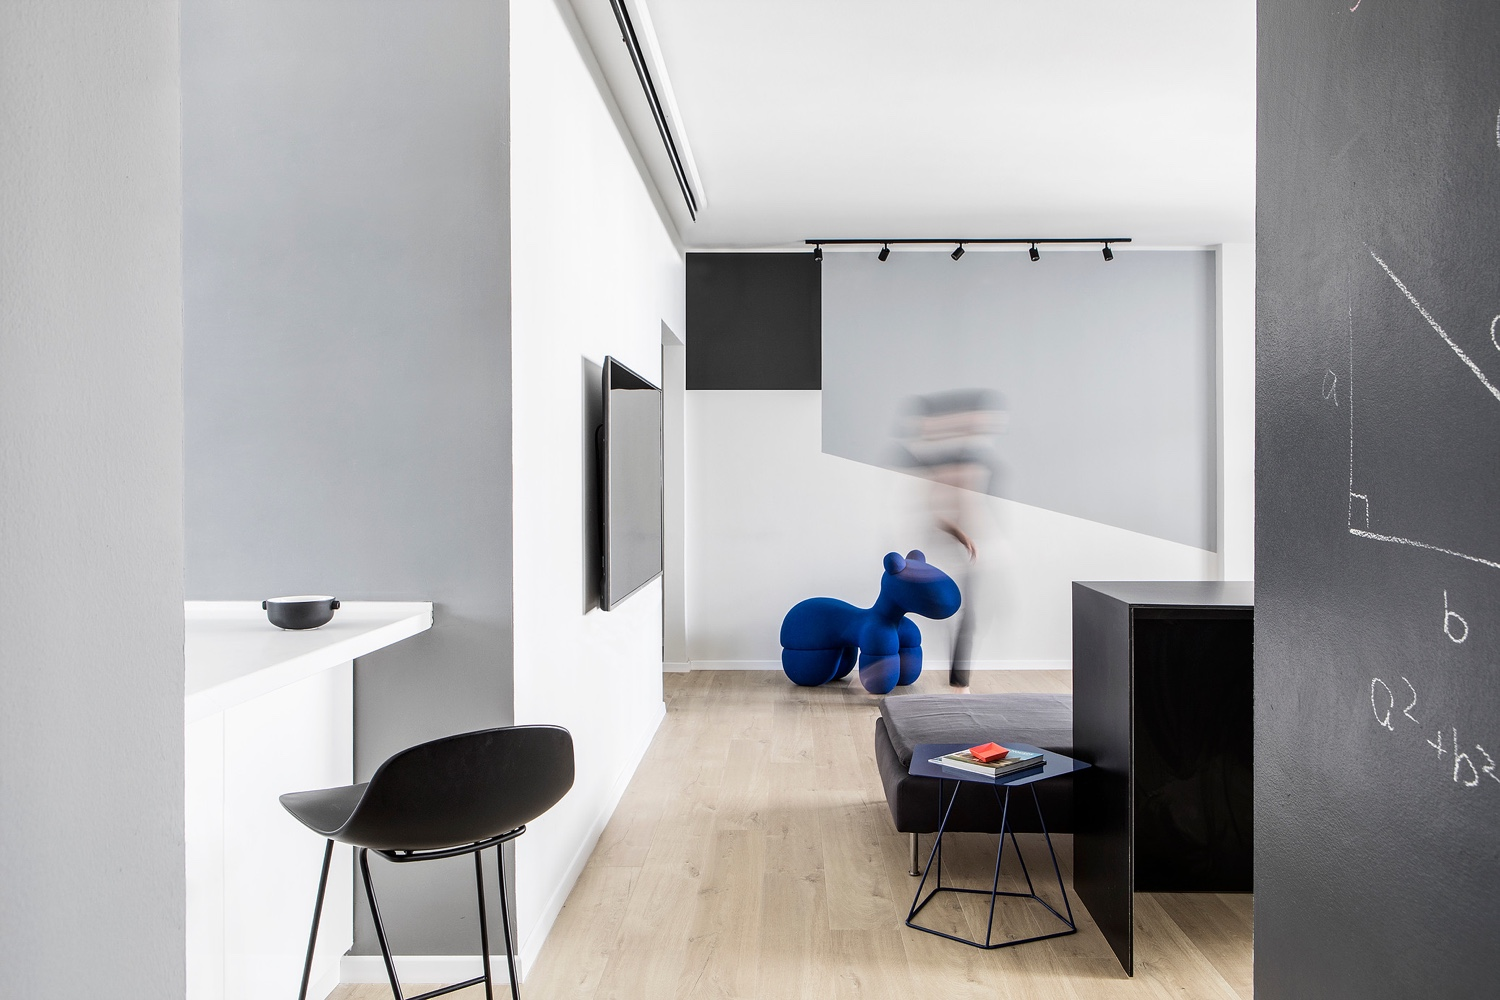 A dark blue side table and large childs toy in the natanya apartments living space